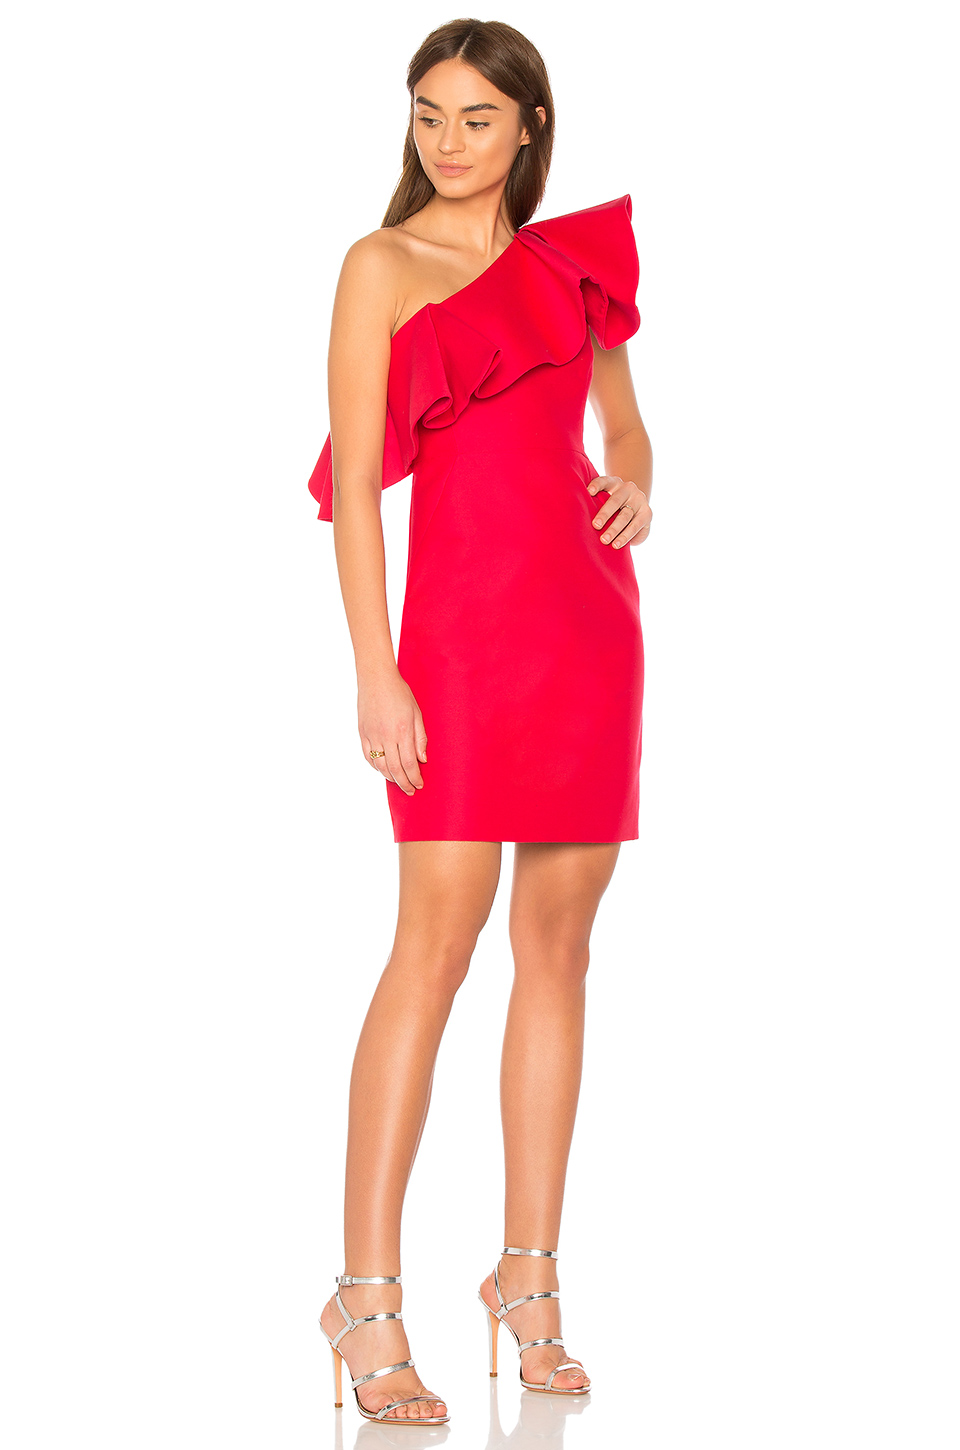 f5ca65c2f5b08 Buy Original Halston Heritage One Shoulder Dress With Flounce at ...